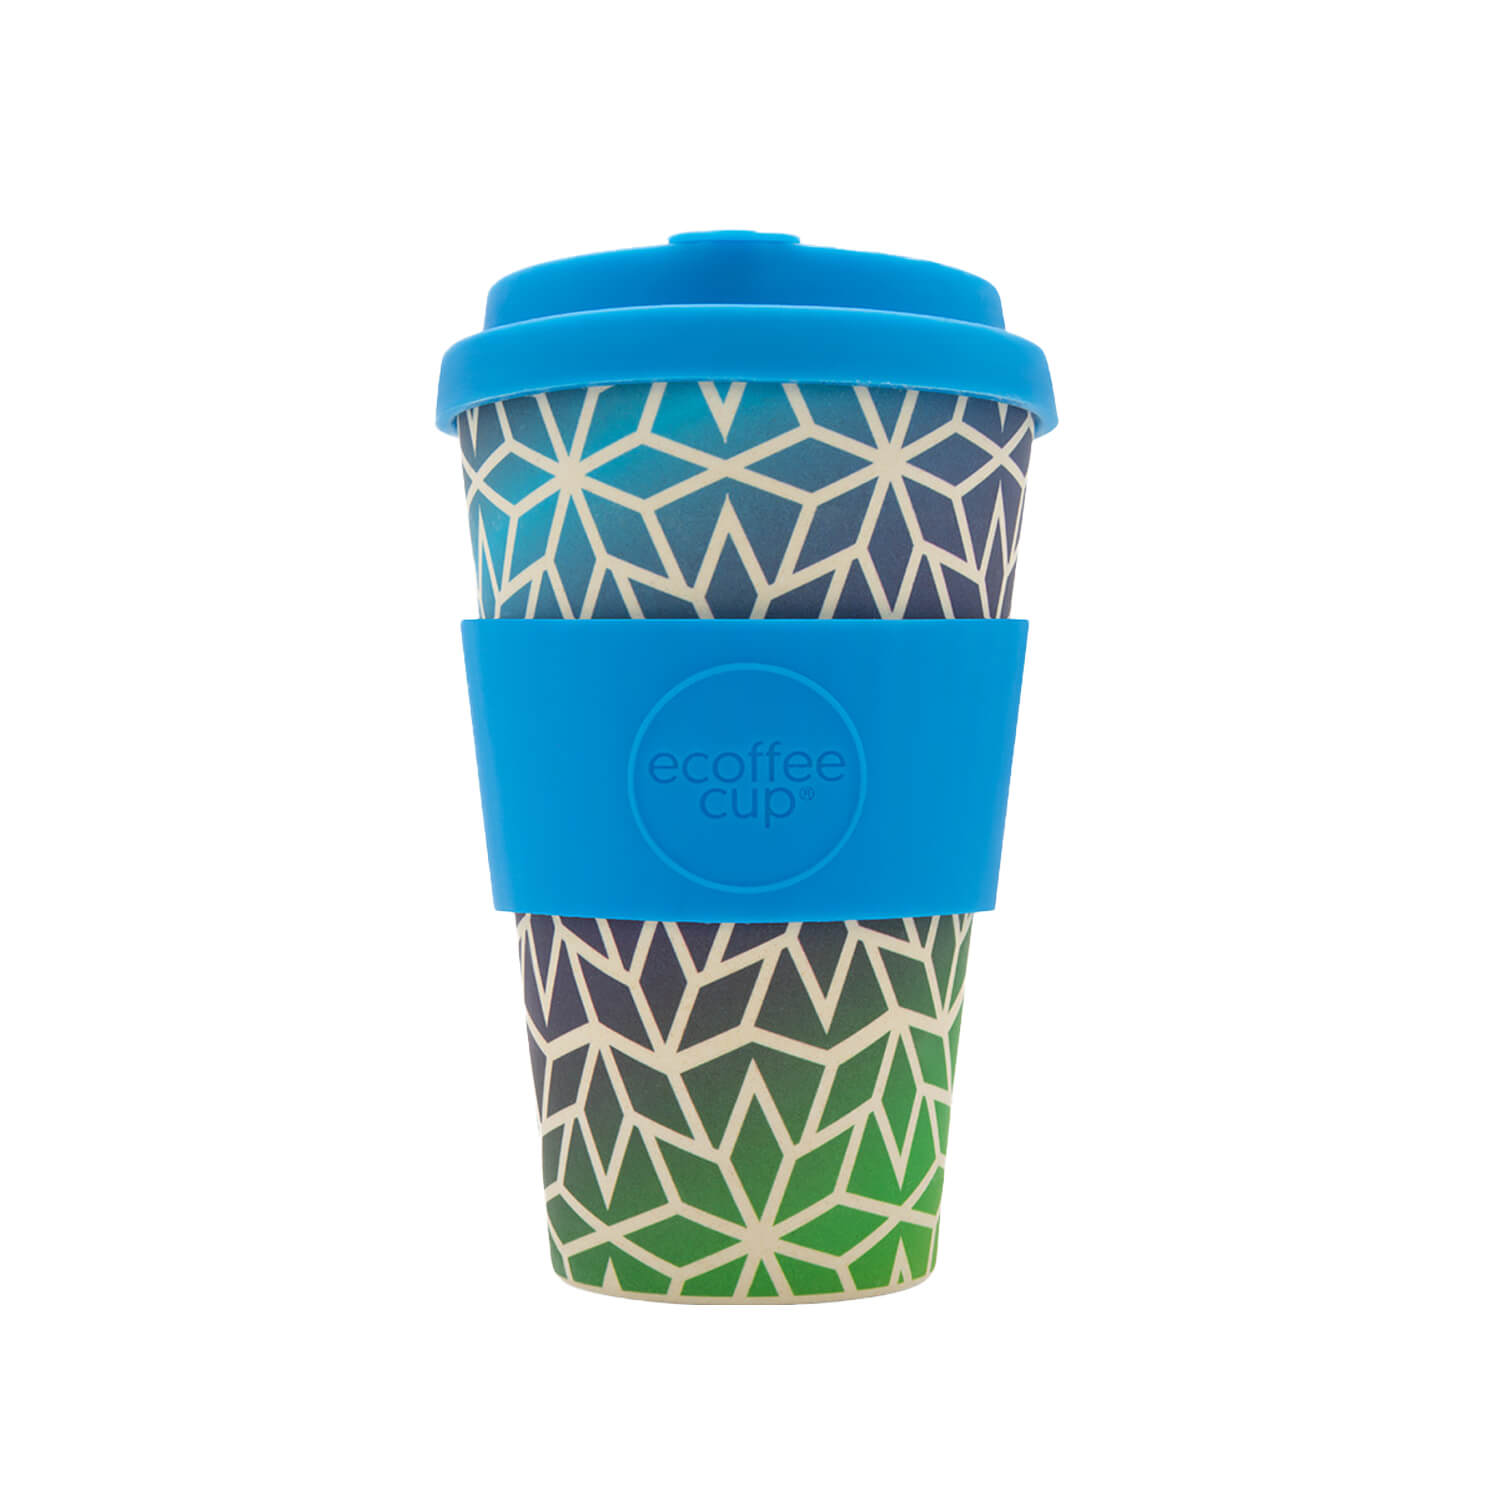 Ecoffee cup - Stargate - 400 ml